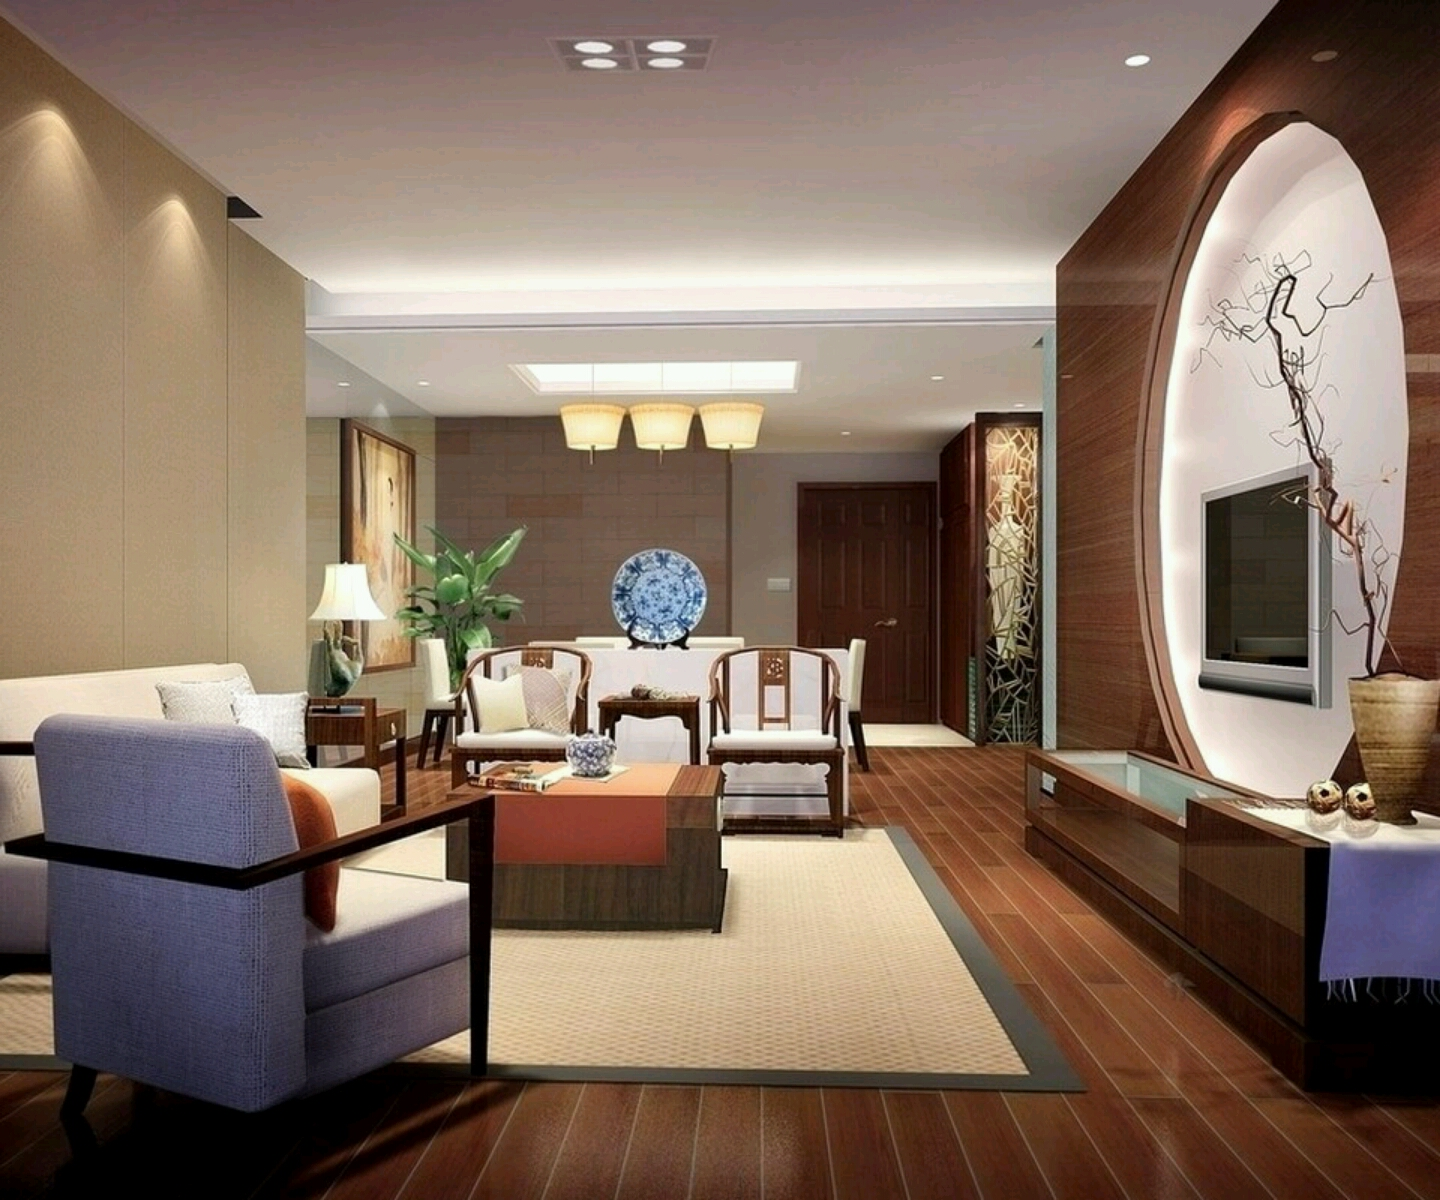 Luxury homes interior decoration living room designs ideas modern home designs - Interior design living room styles ...